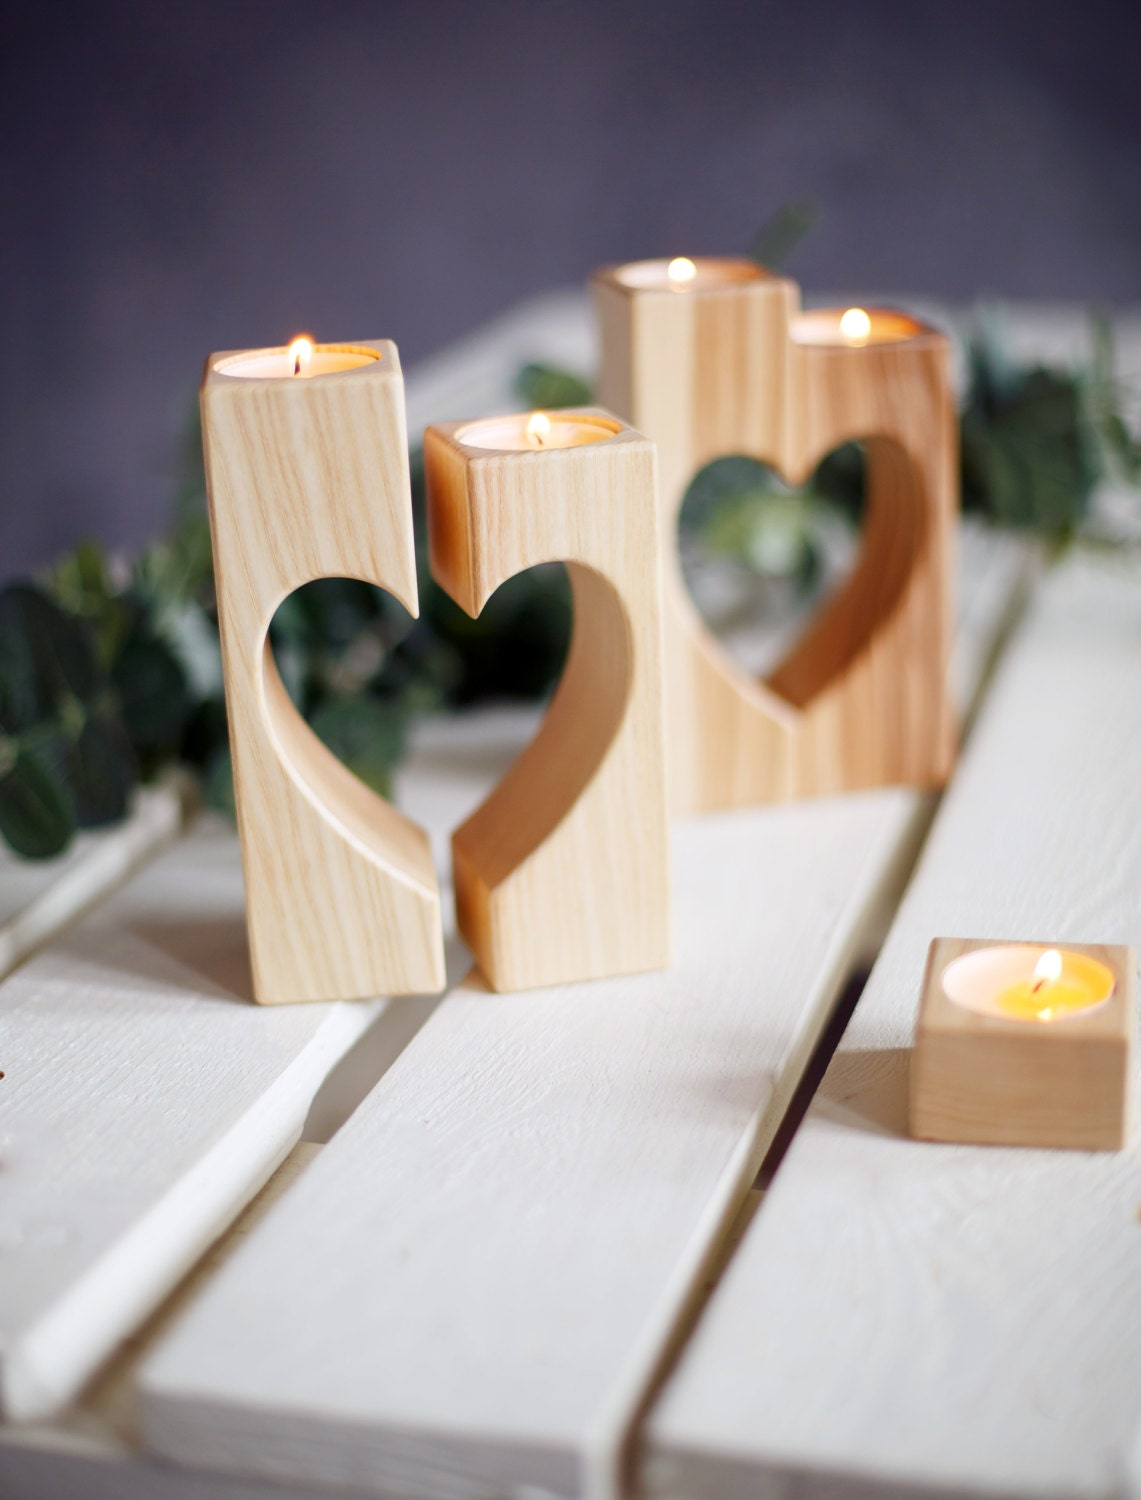 Wooden Candle Holders Australia Heart Candle Holders Wooden Candle Holder Rustic Candle Holder